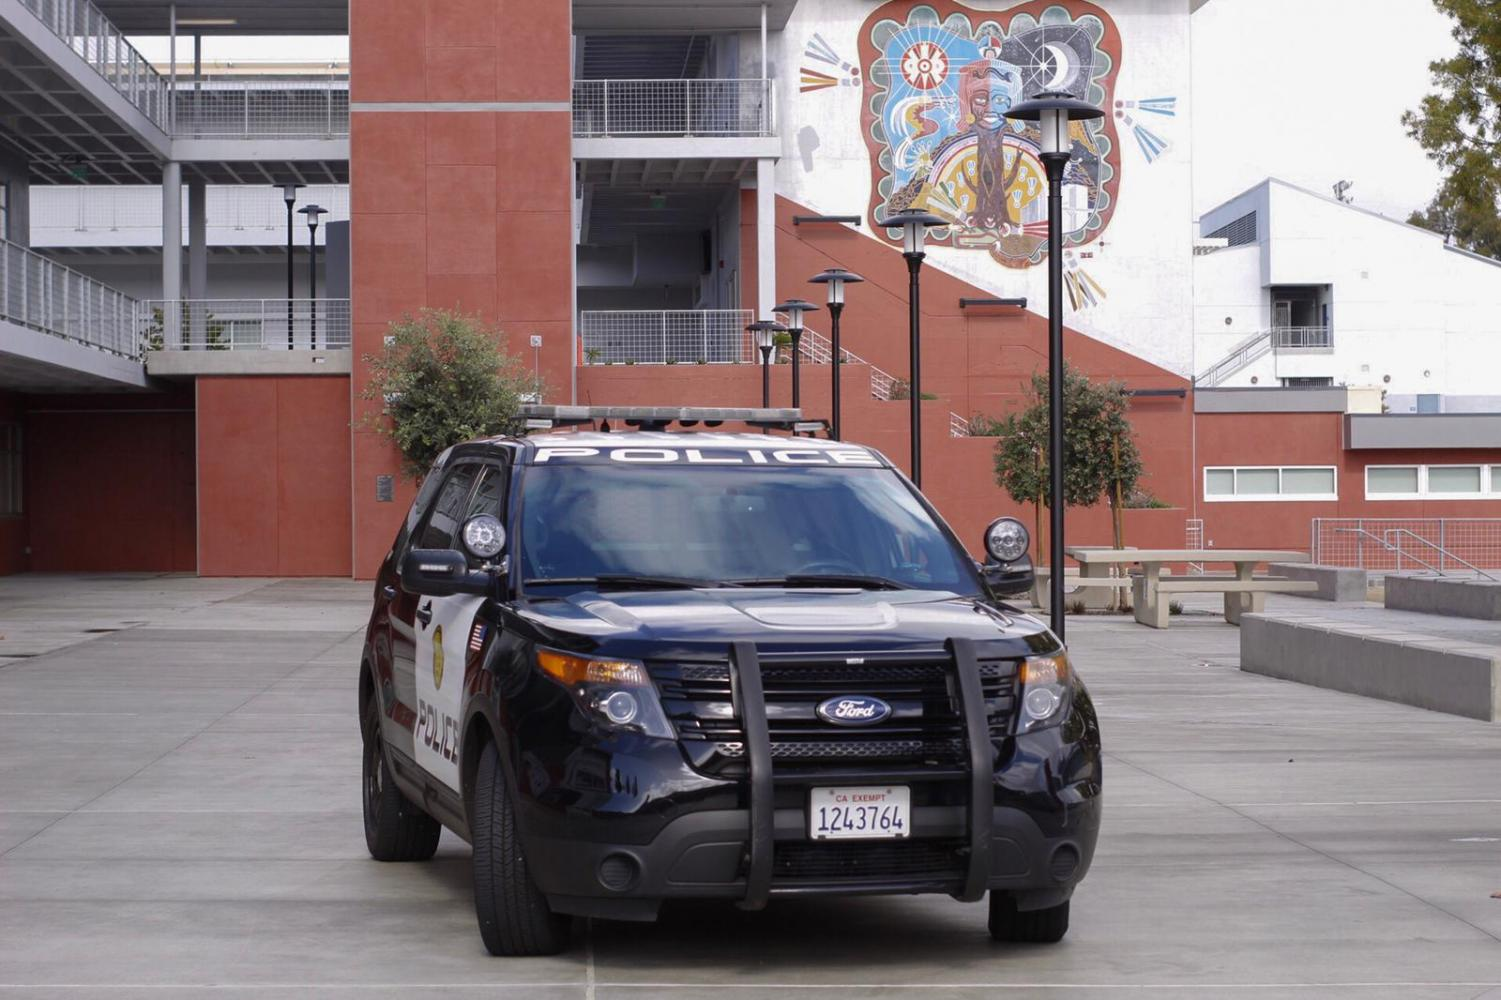 San Diego Community College police evacuated the San Diego City College campus after a late-morning power outage. Photo by David Ahumada, City Times